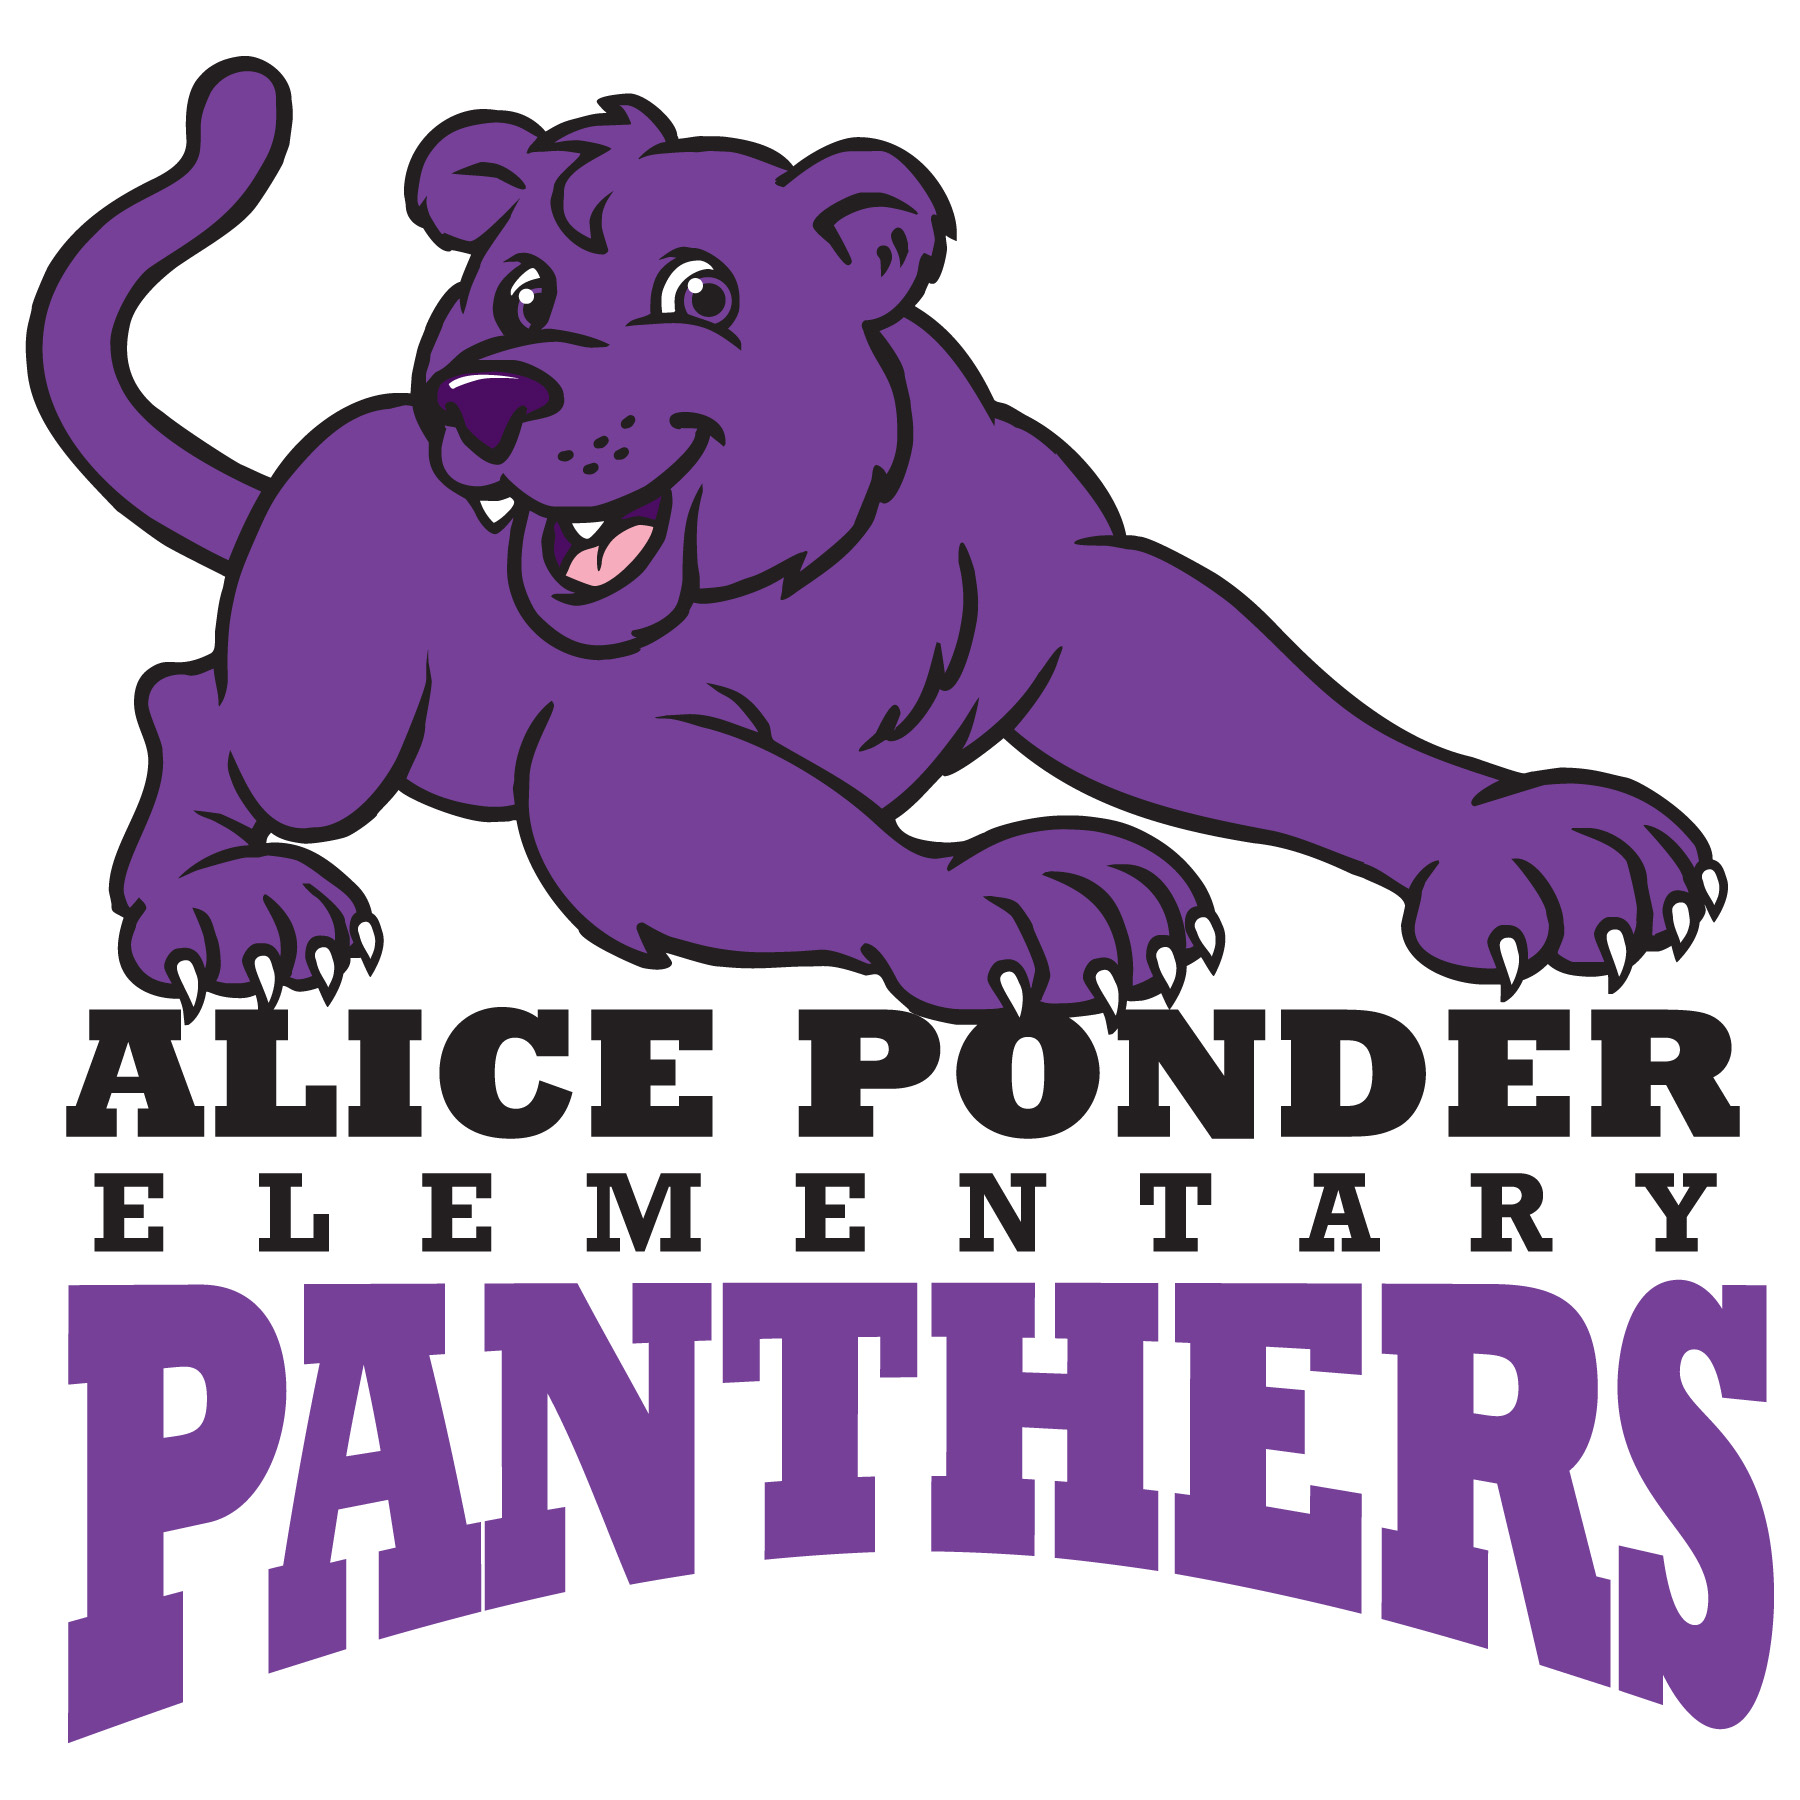 Alice Ponder Elementary Panthers Logo